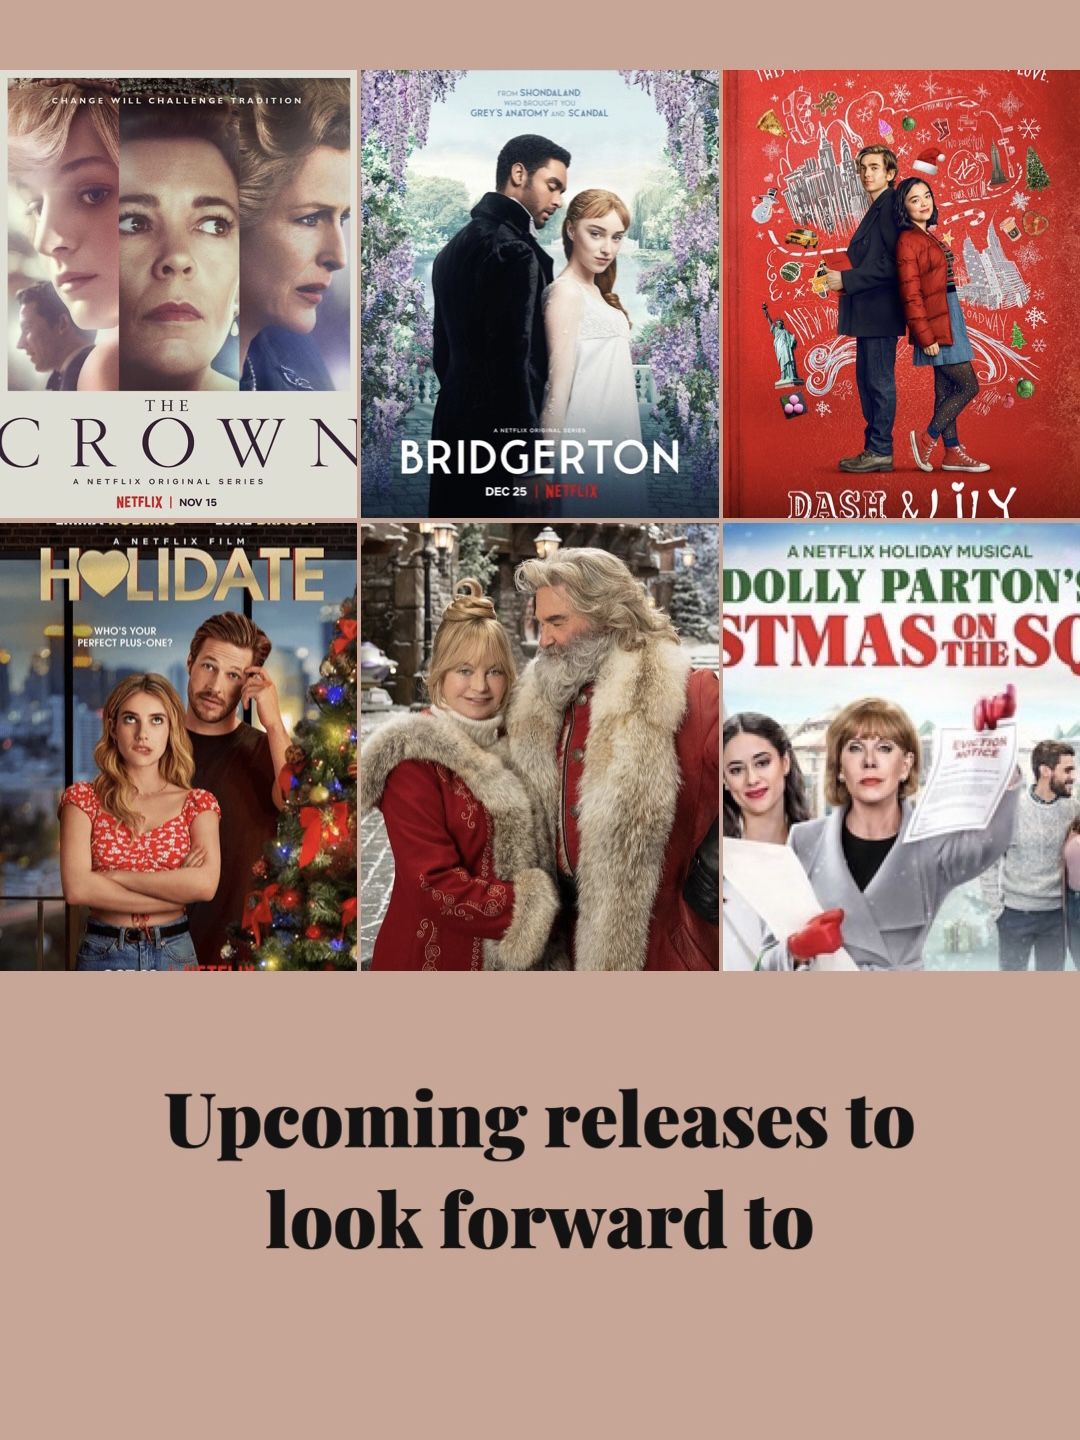 Upcoming releases to look forward to